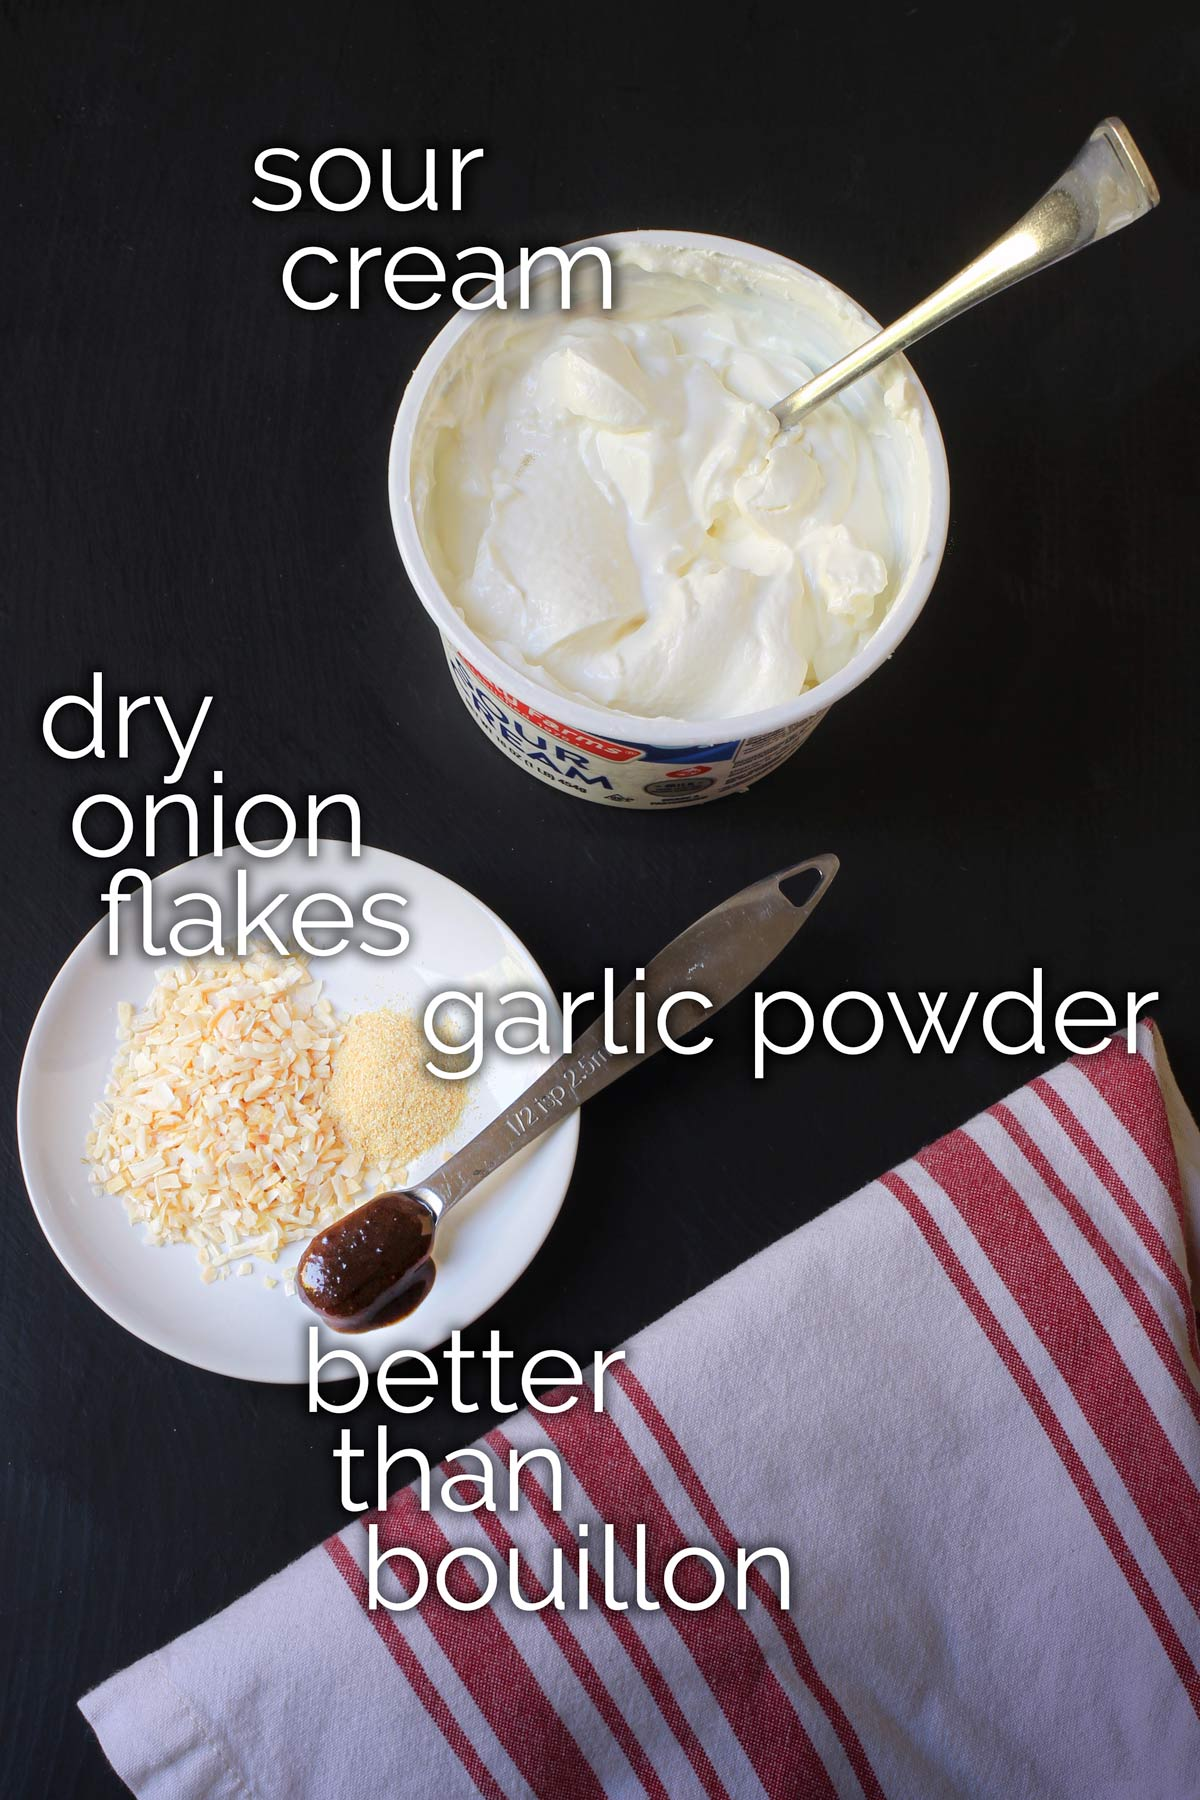 sour cream, onion flakes, garlic powder, and bouillon measured out on table top.